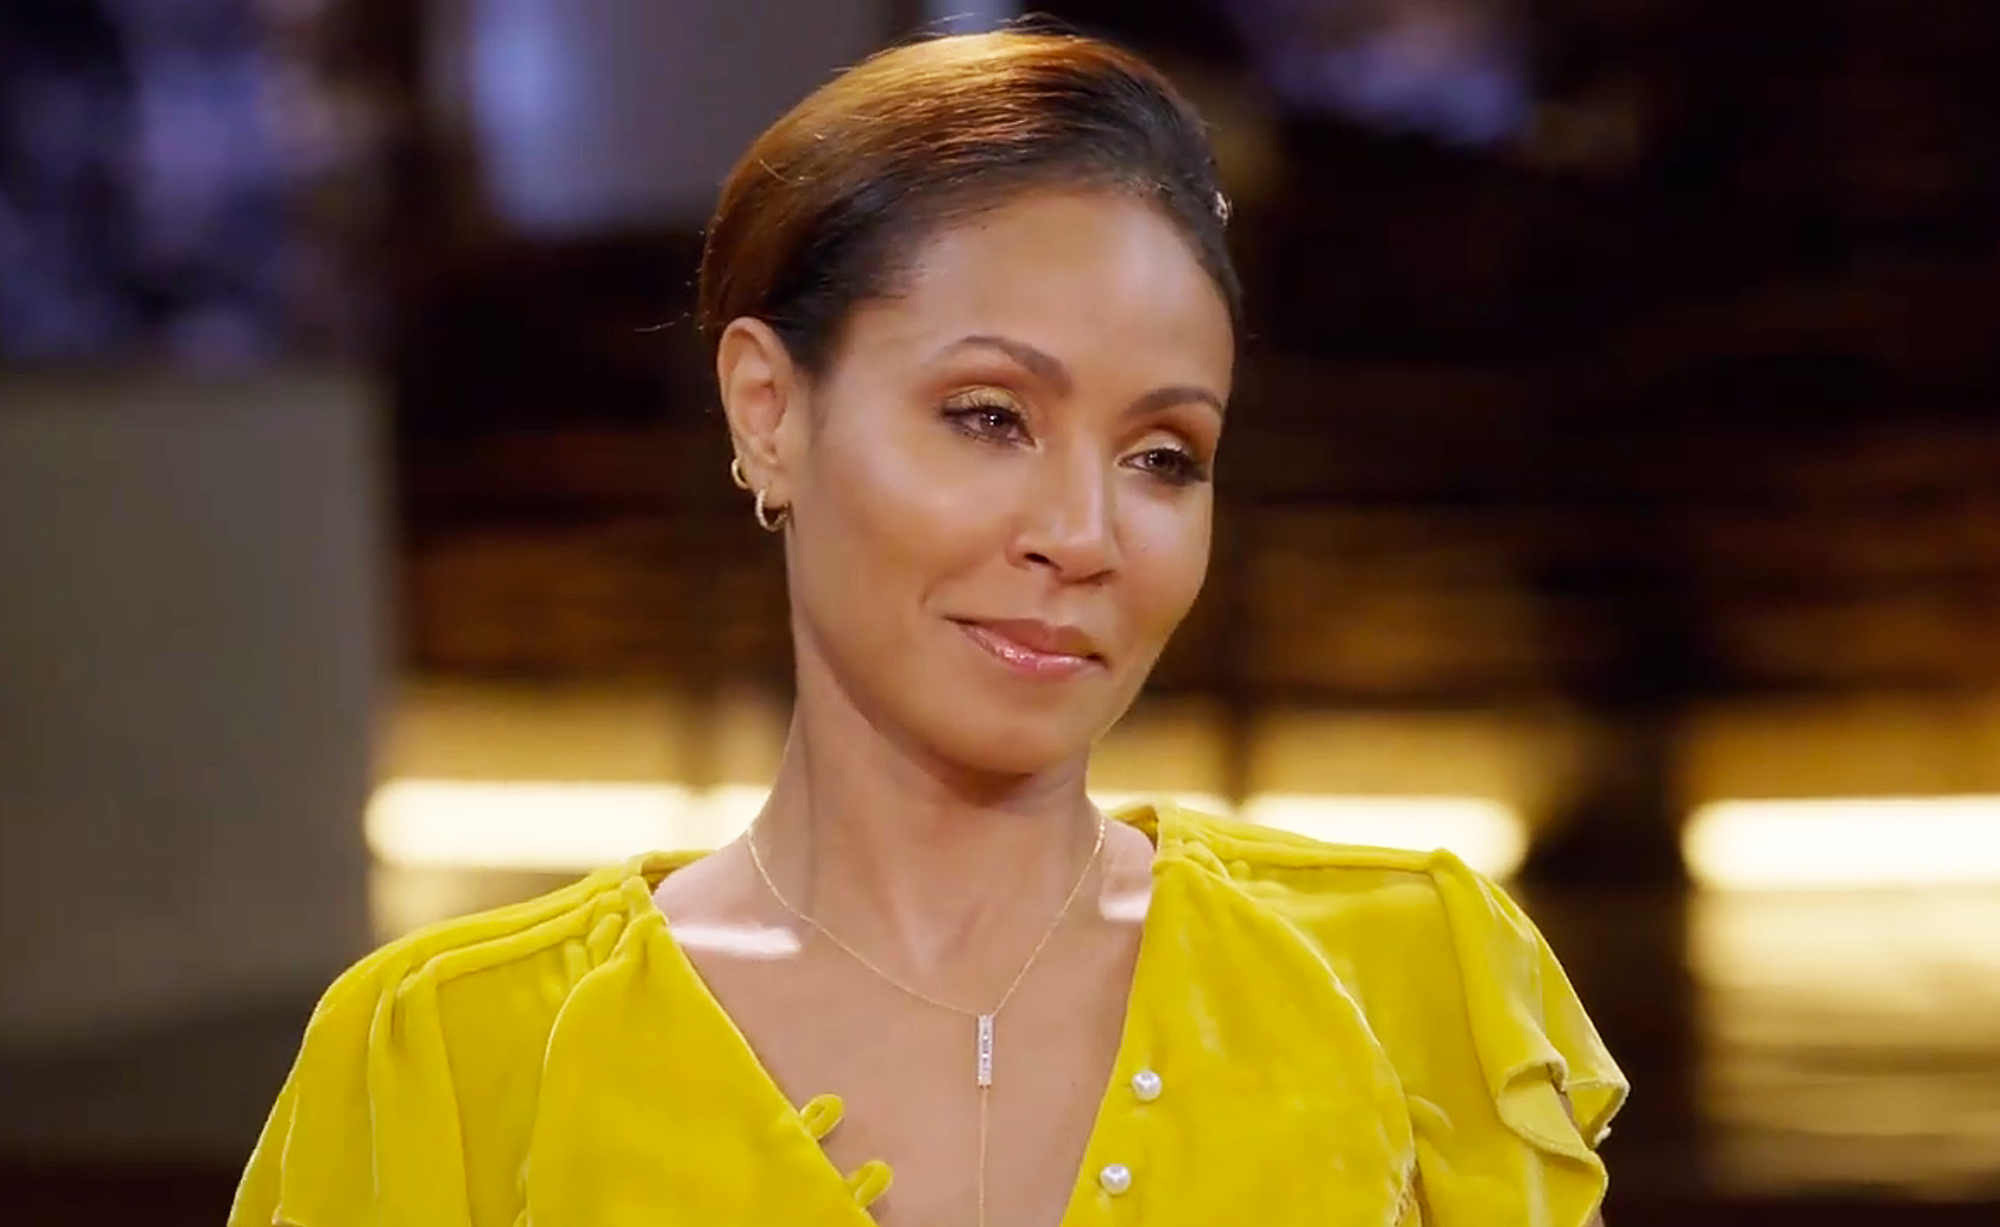 Jada Pinkett Smith talks about How she Dealt with Suicidal Thoughts